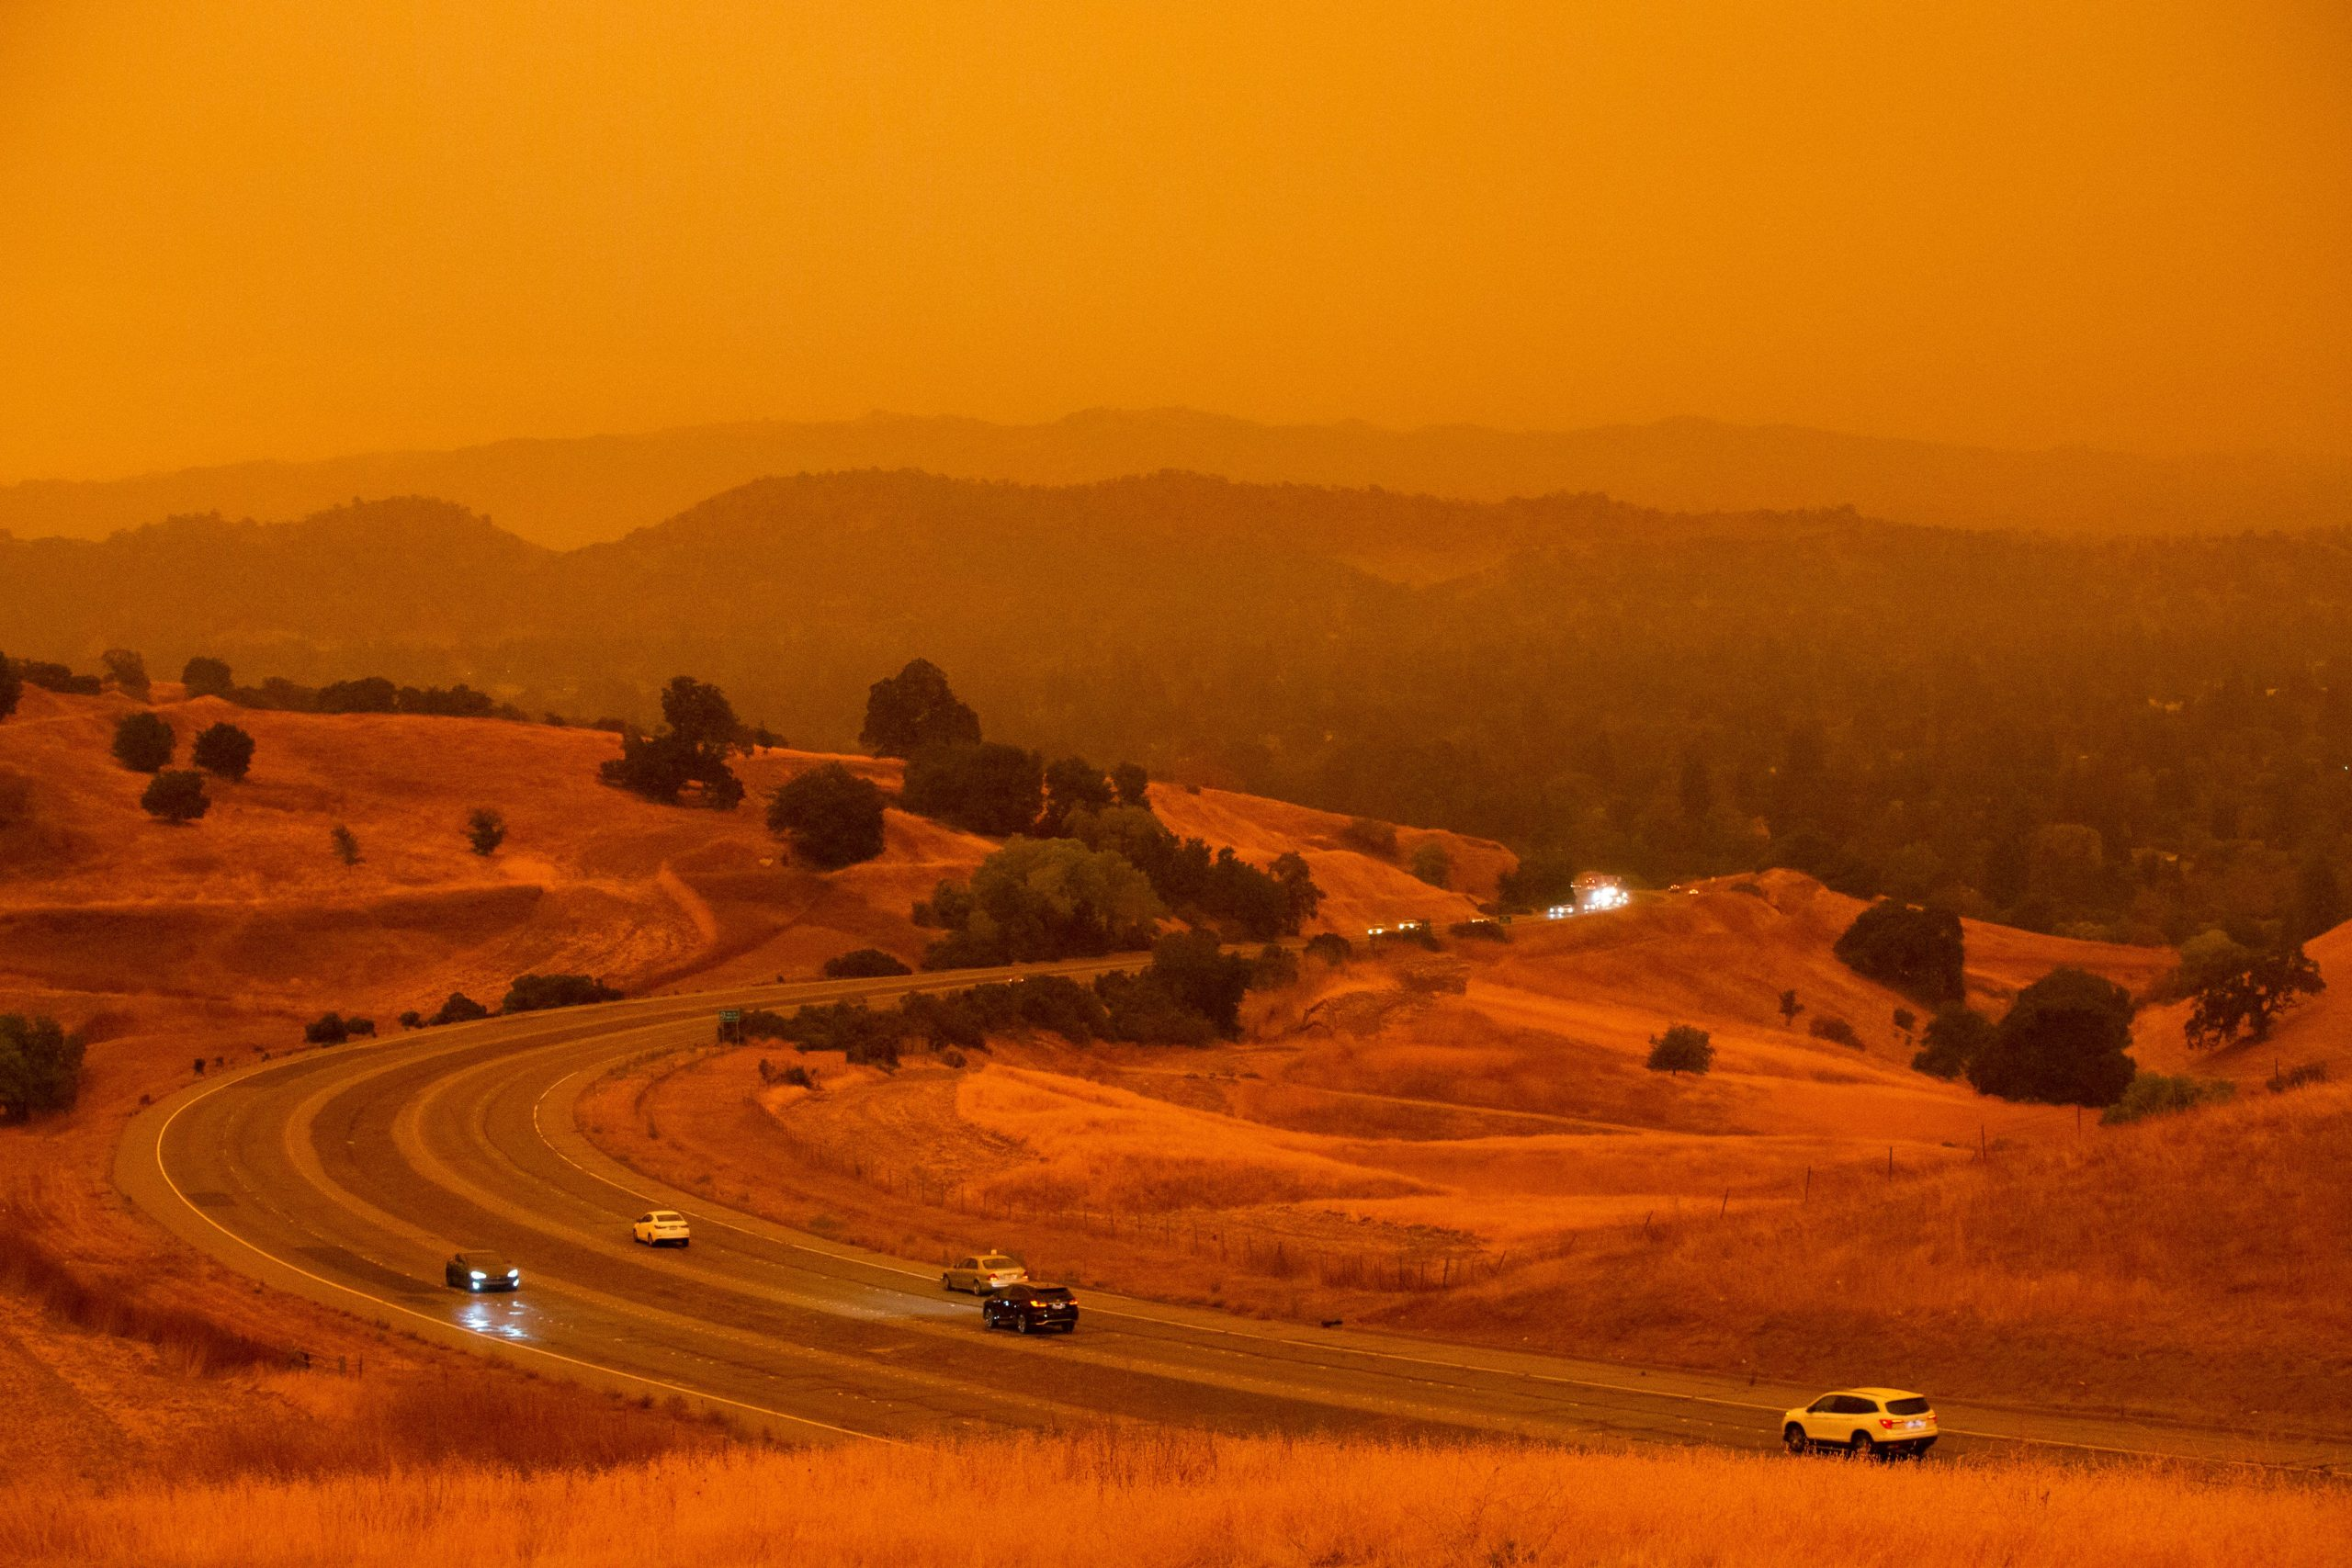 Cars drive along Ygnacio Valley Road below an orange sky filled with wildfire smoke in Concord, California on September 9, 2020, as a hazy-looking Walnut Creek can be seen in the distance through the smoke. - Dangerous dry winds whipped up California's record-breaking wildfires and ignited new blazes, as hundreds were evacuated by helicopter and tens of thousands were plunged into darkness by power outages across the western United States. (Photo by BRITTANY HOSEA-SMALL/AFP via Getty Images)